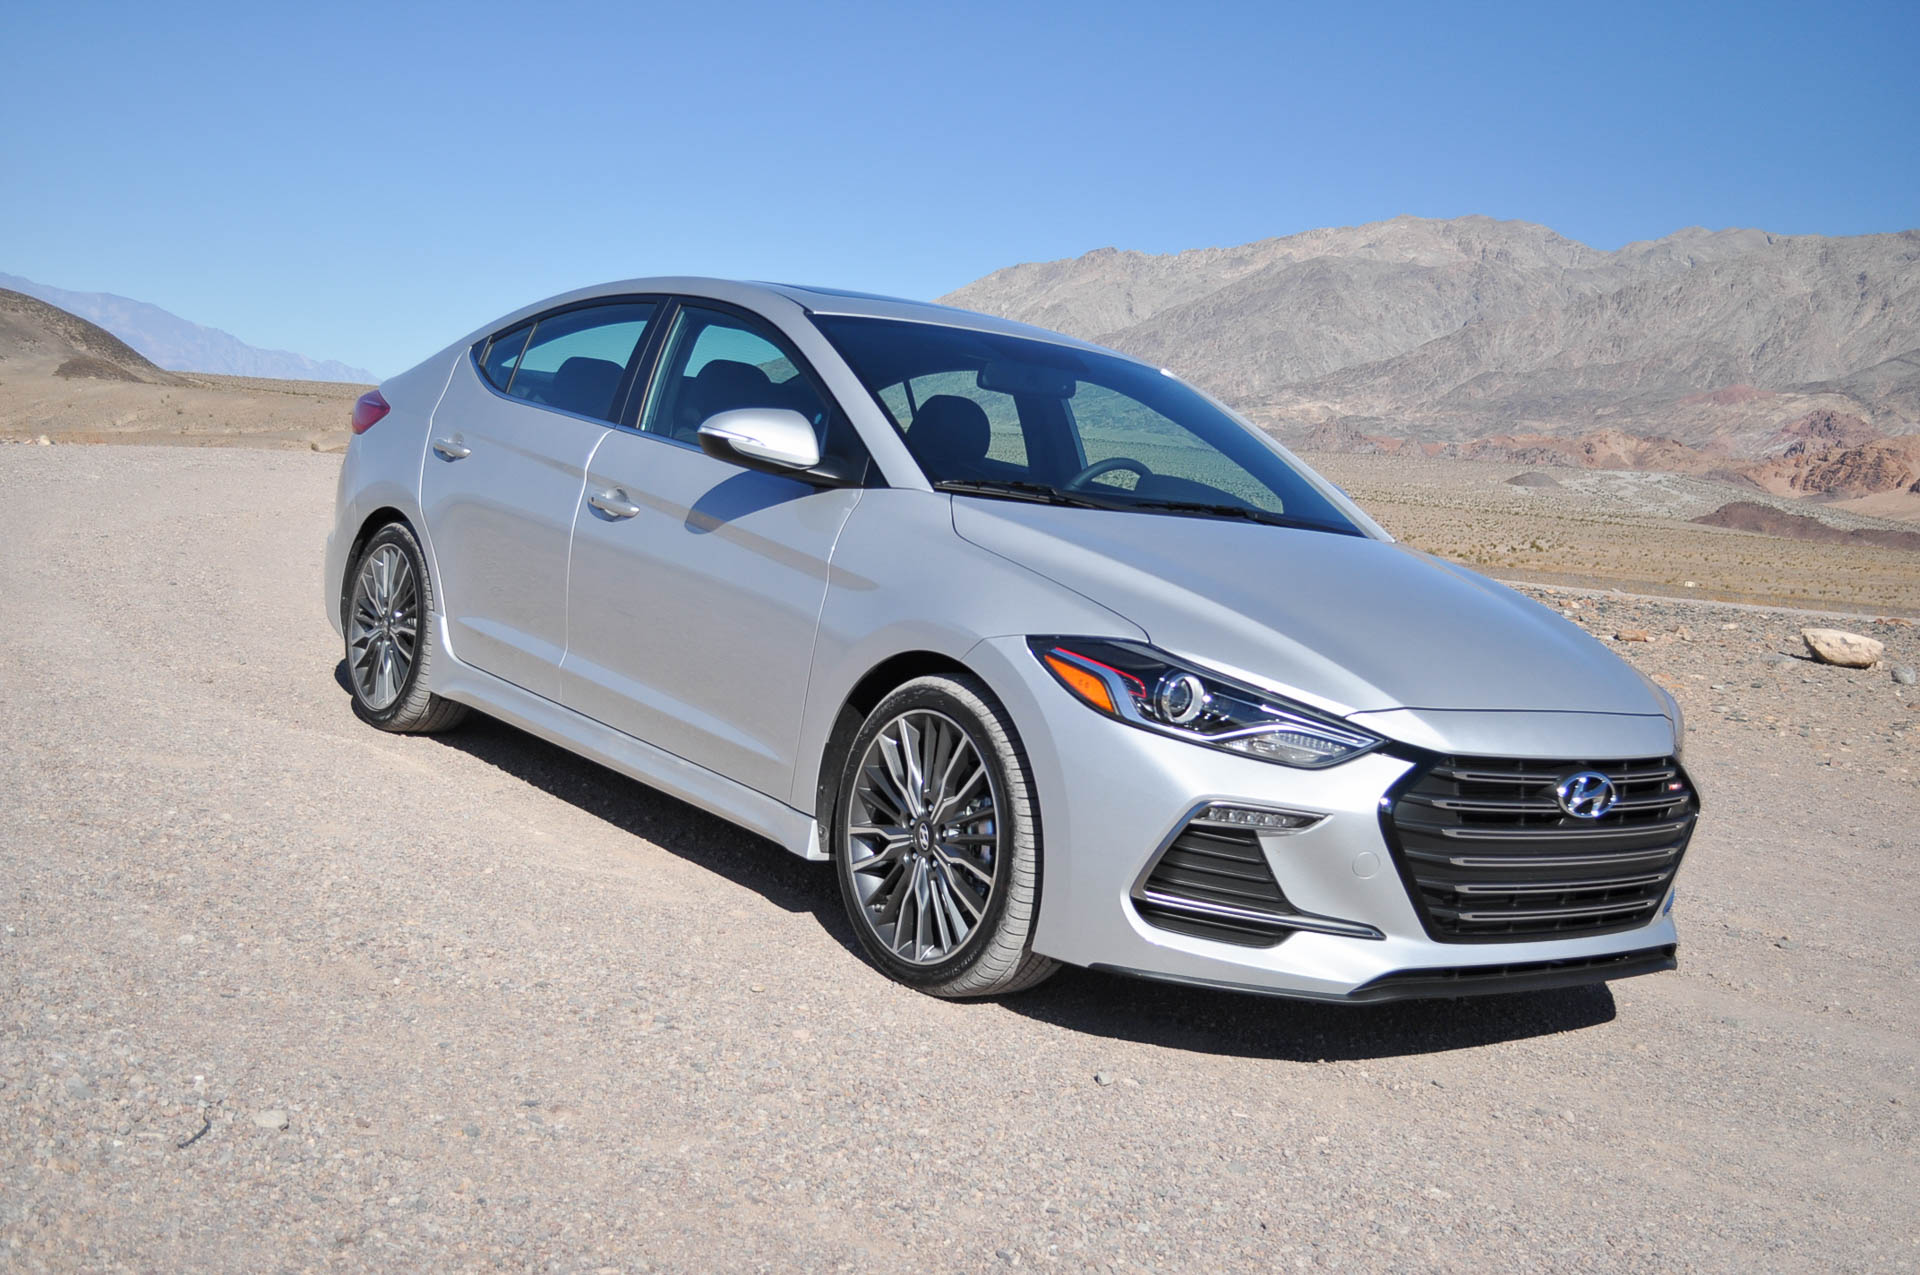 hyundai first test cars profile review sport side elantra